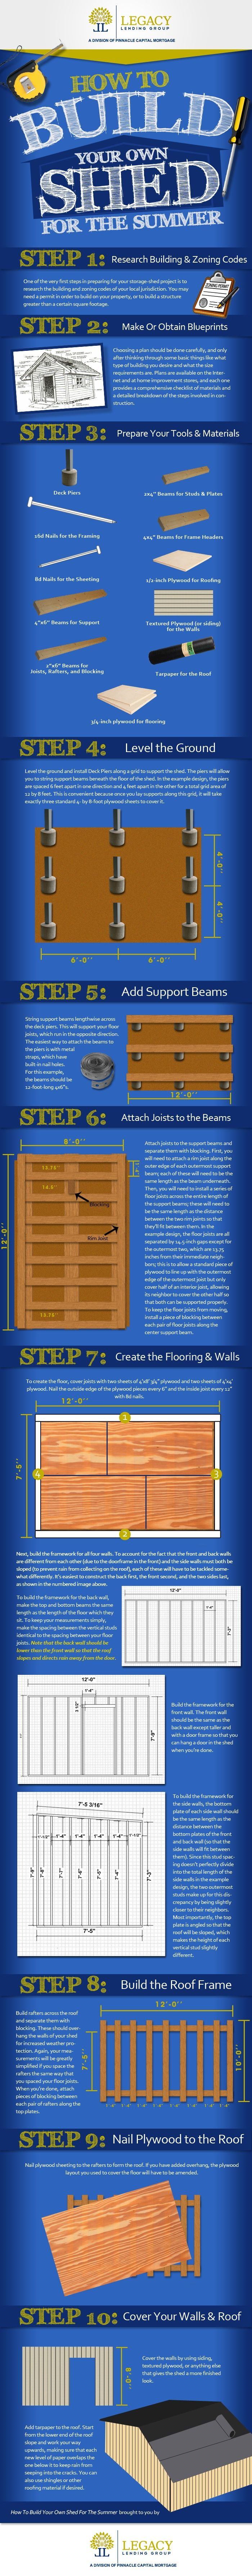 How To Build Your Shed For The Summer (Infographic)